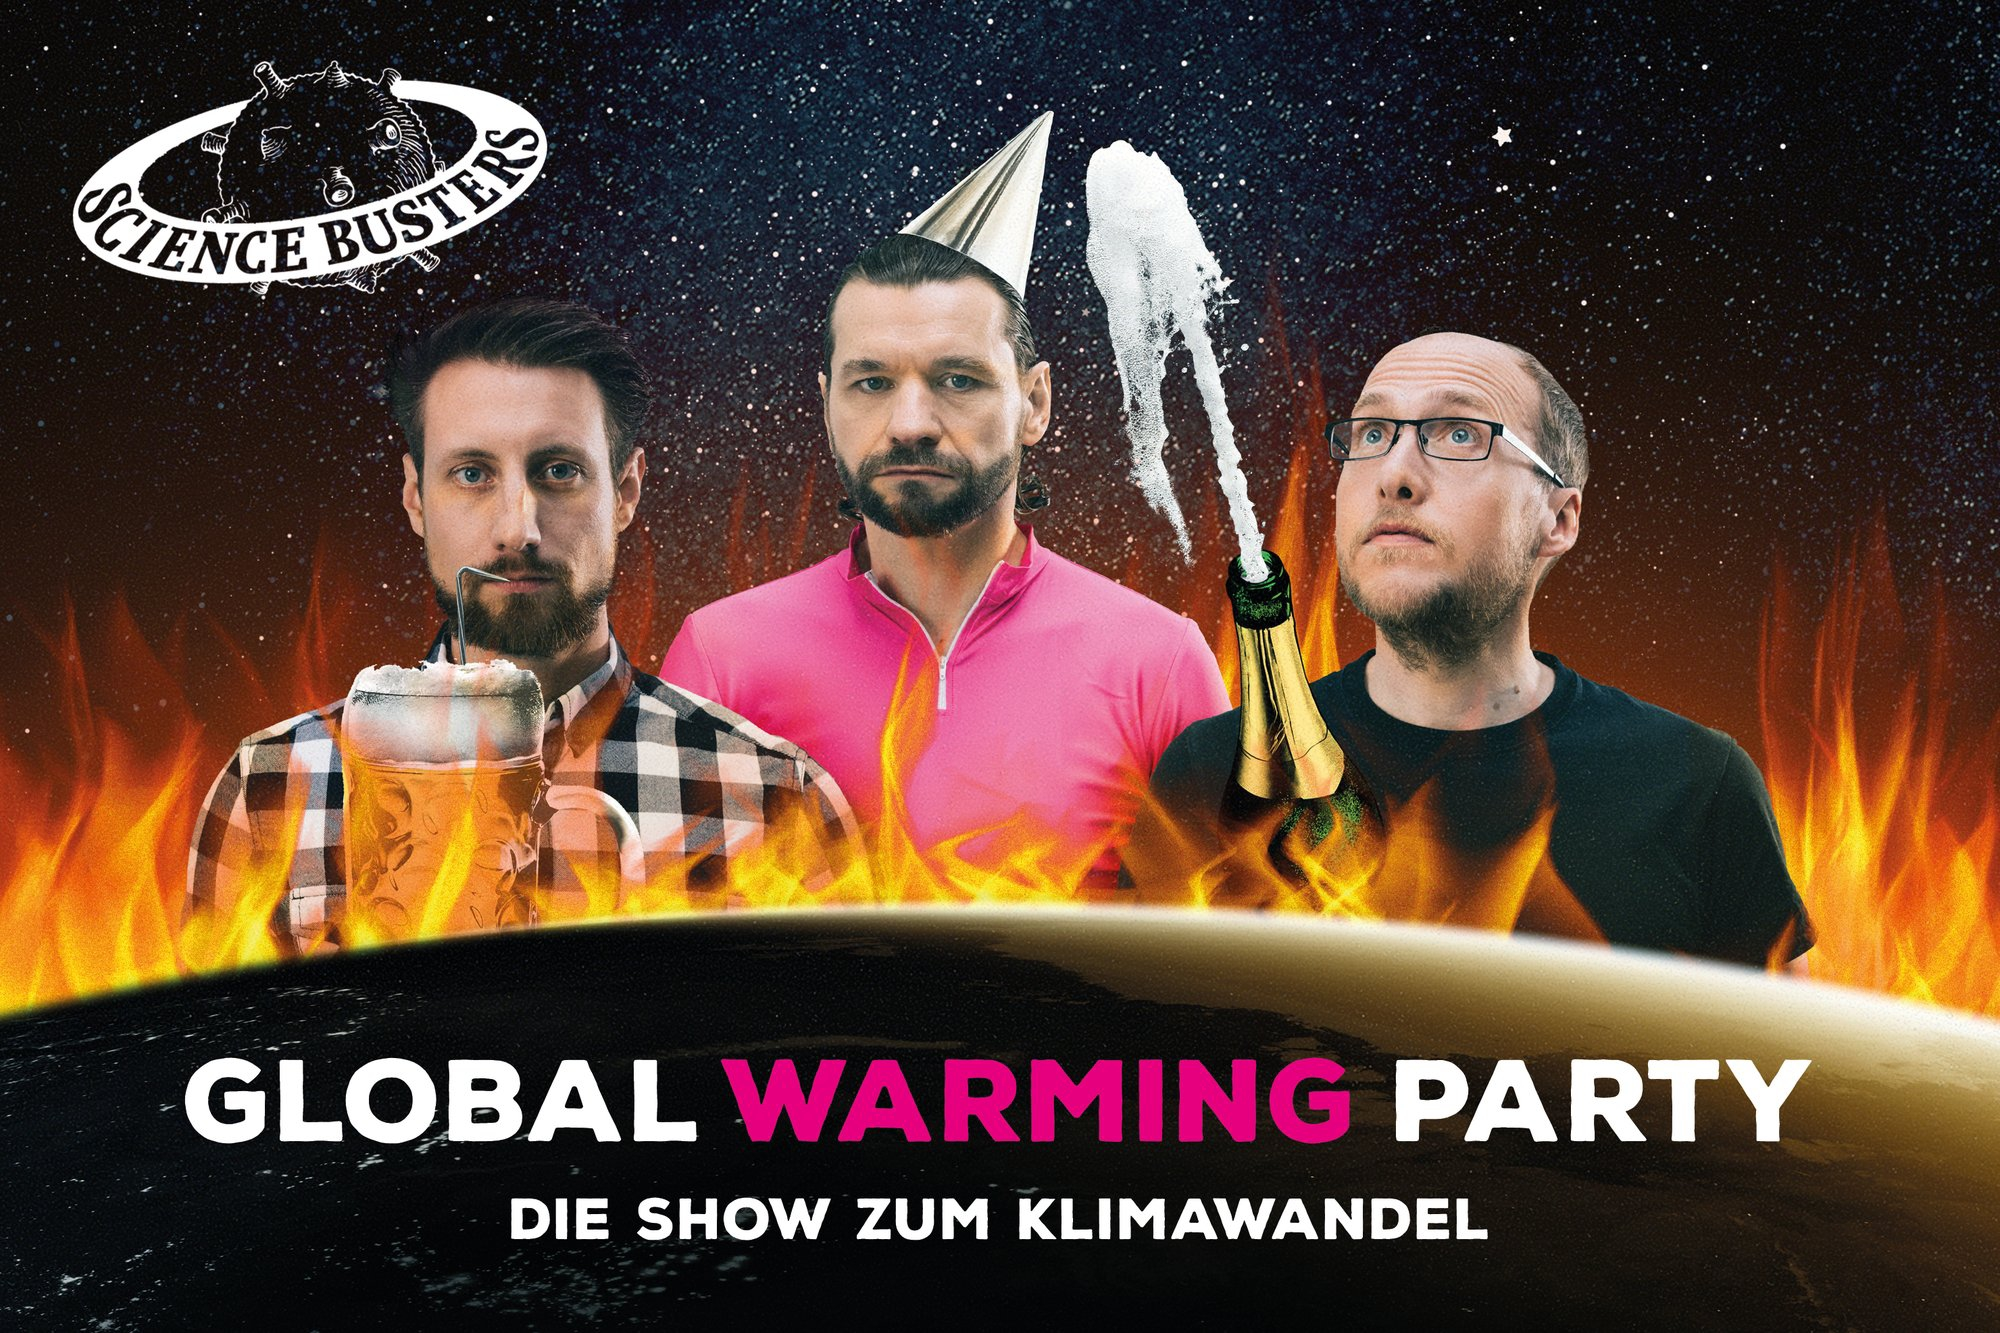 Sience Busters: Global Warming Party